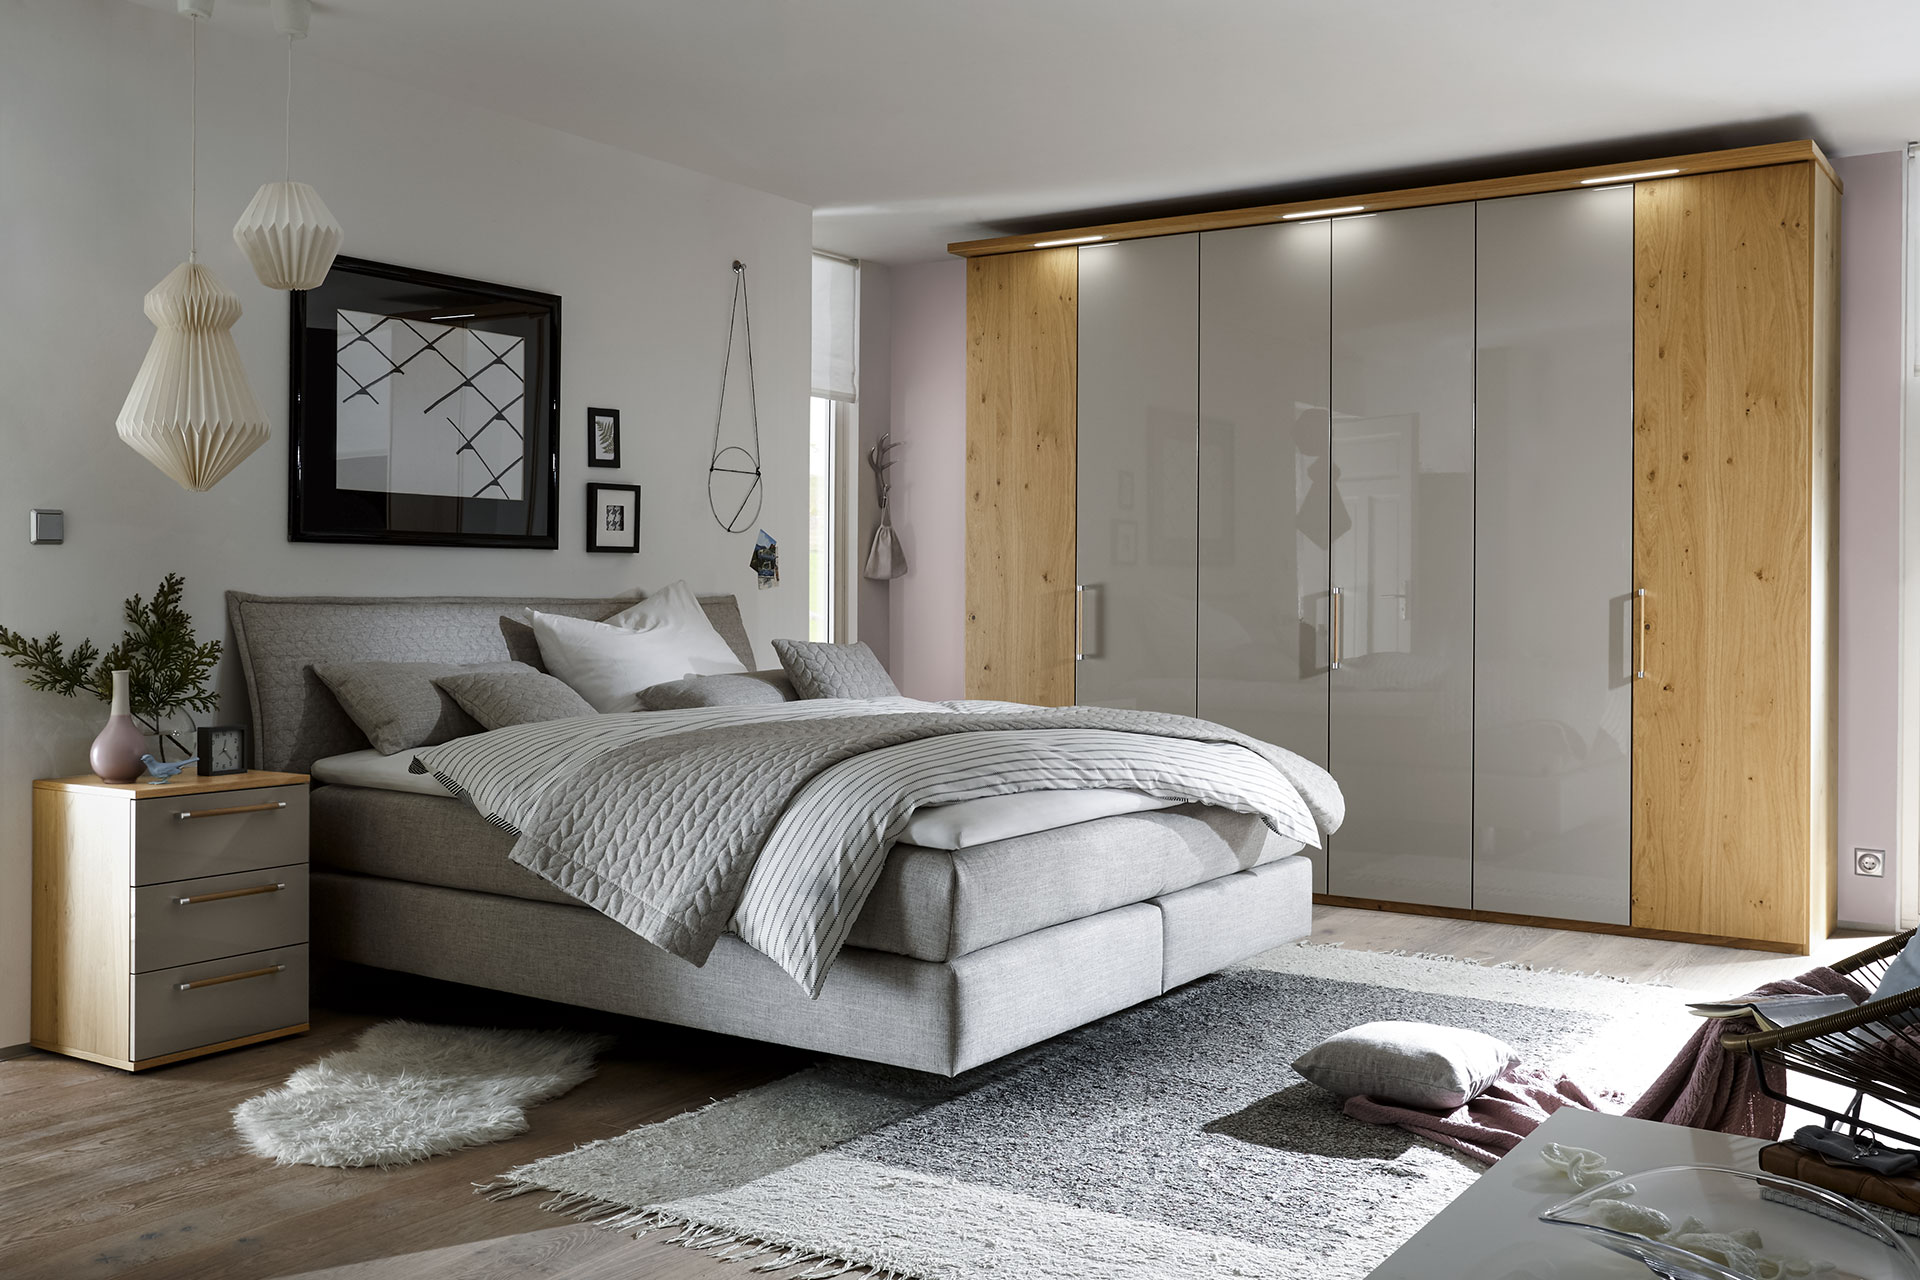 Bedroom-couture-Femira